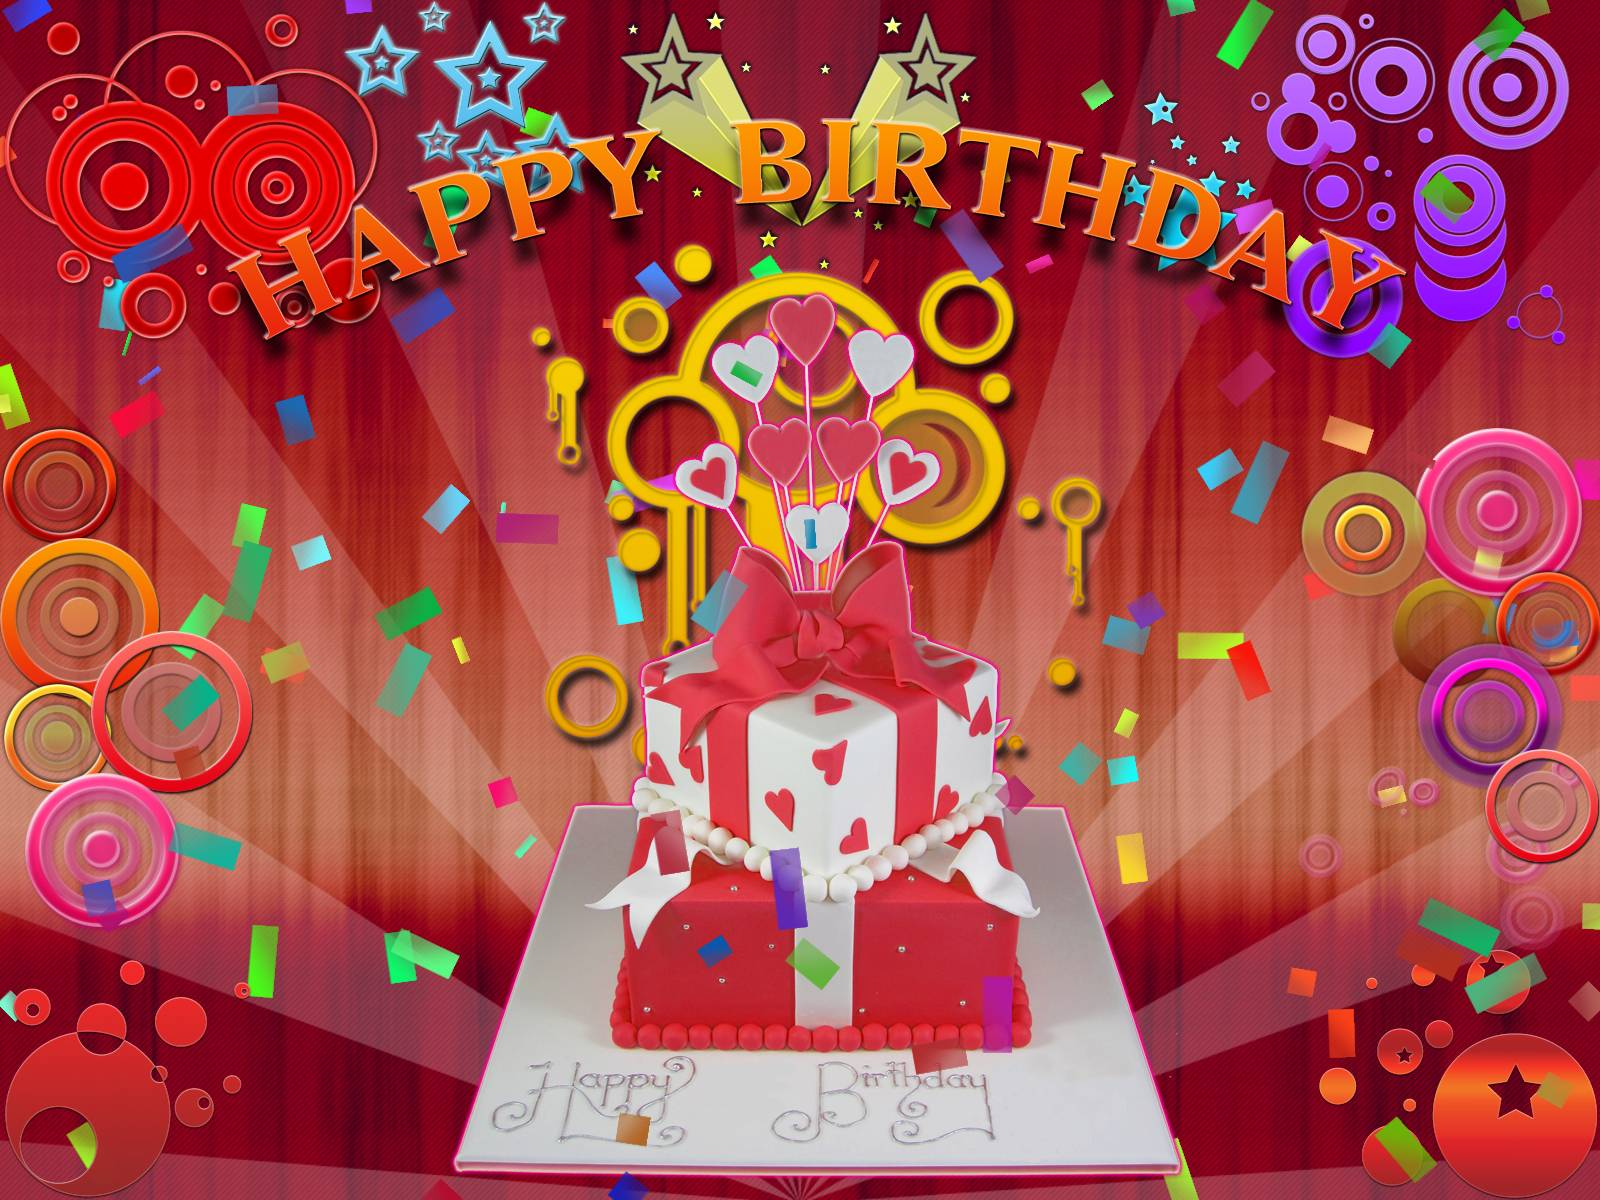 Free Happy Birthday Wallpapers